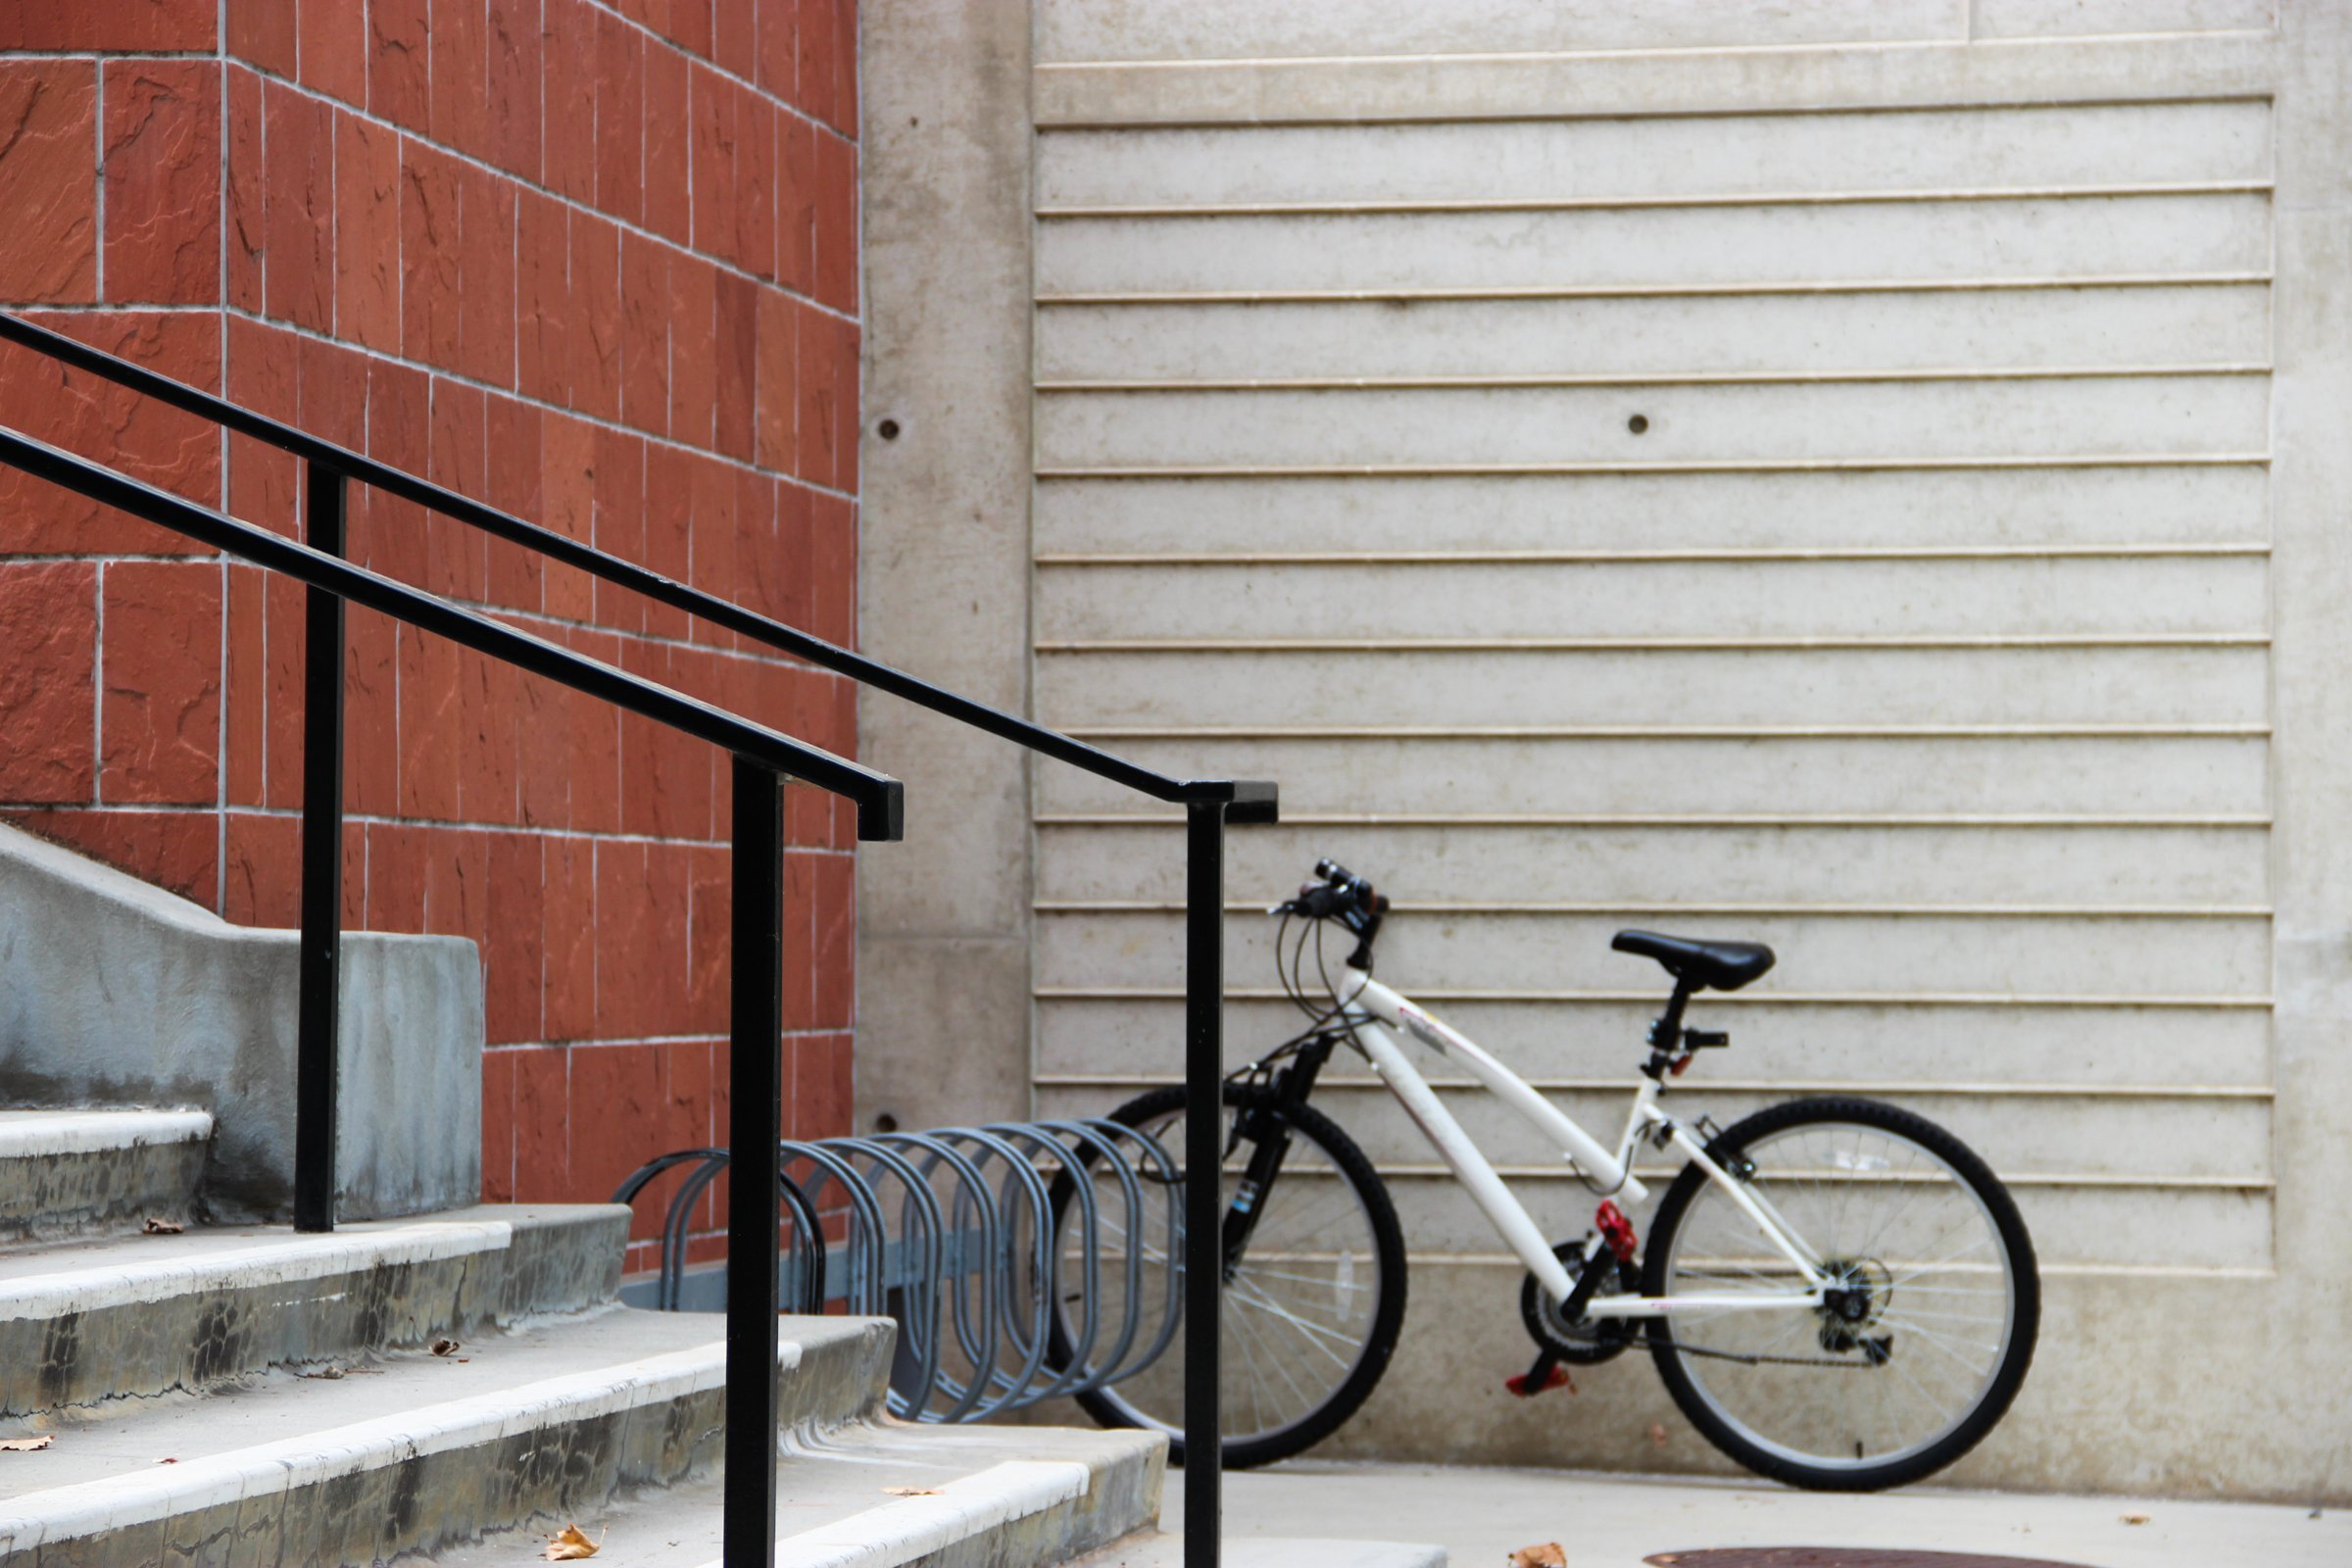 Bicycle Parked by Stairs